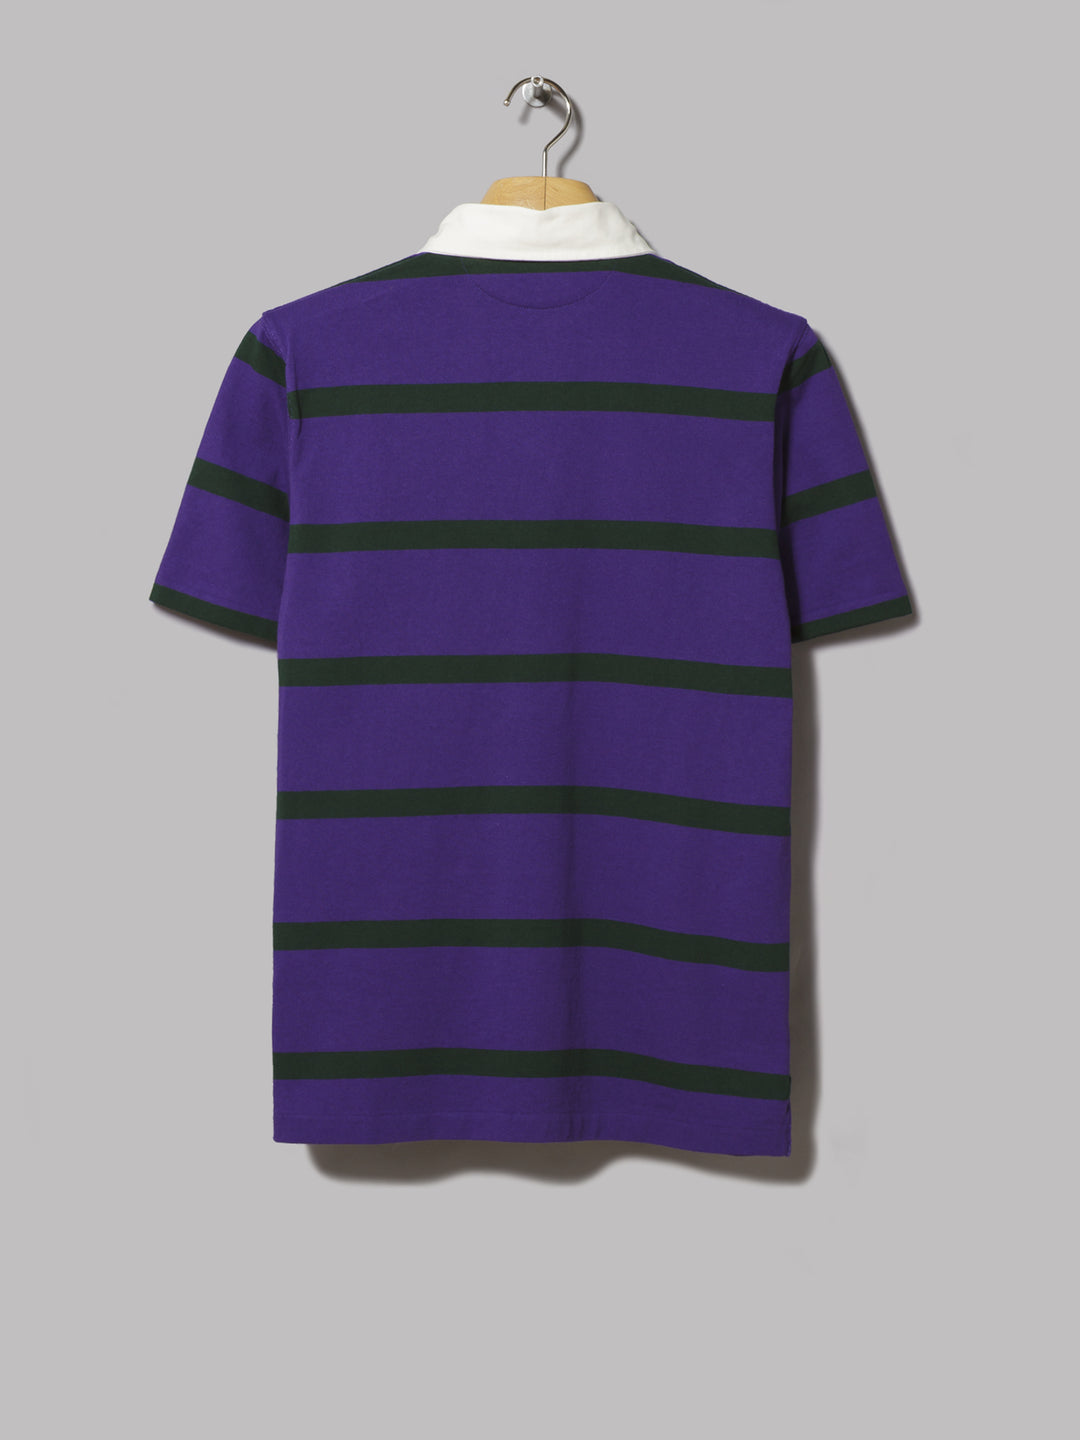 Sleeve Lauren Green Rugby College Polo Shirtchalet Purple Ralph Short Striped 7vmI6Ygbfy